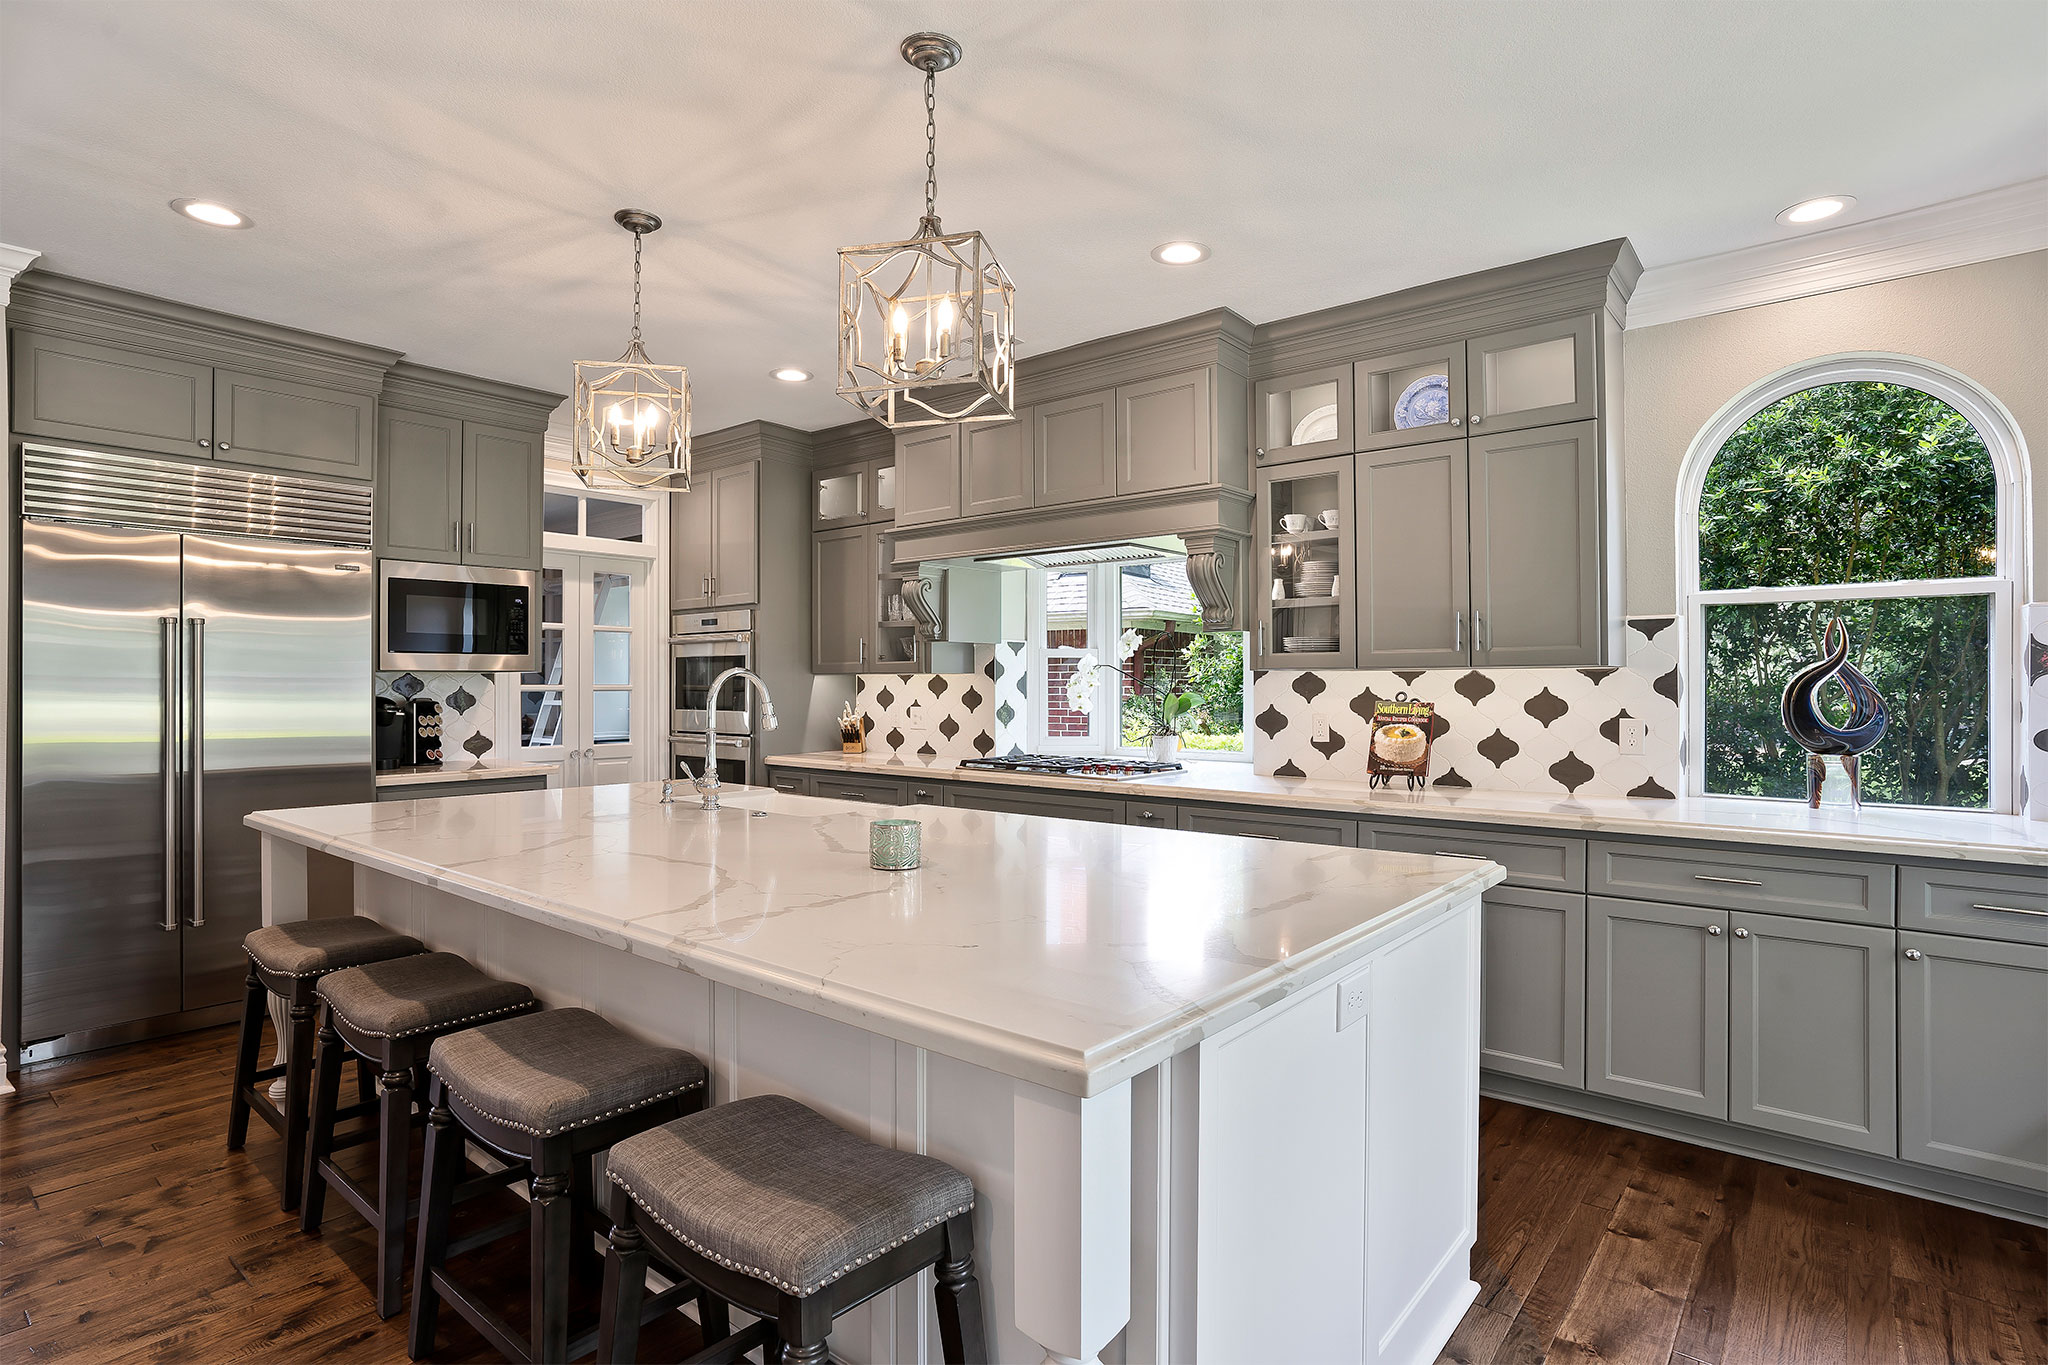 Home Additions Kingwood